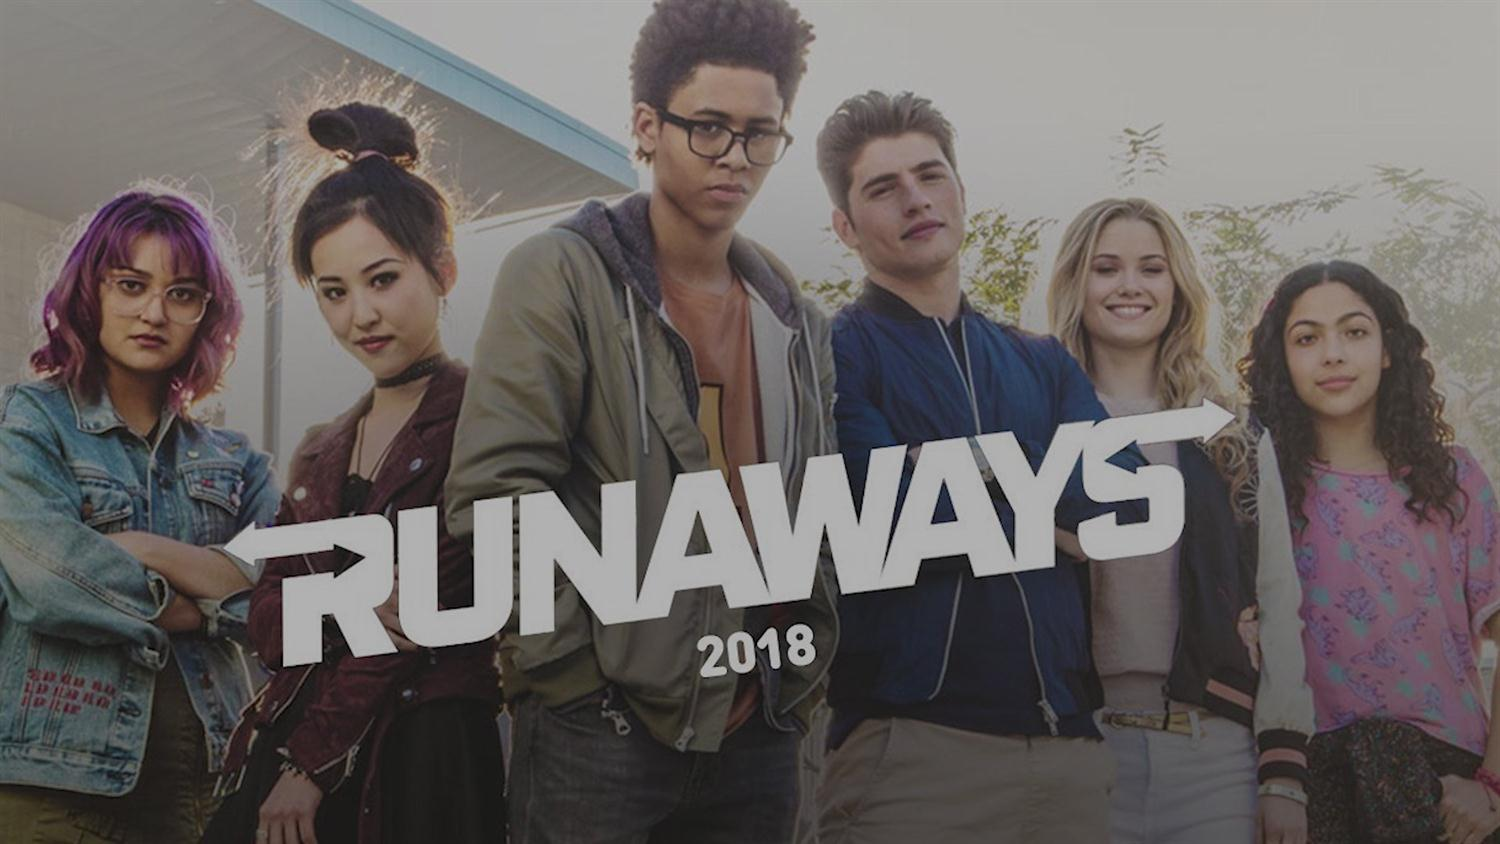 Marvel's Runaways Cast on What Comics They Read